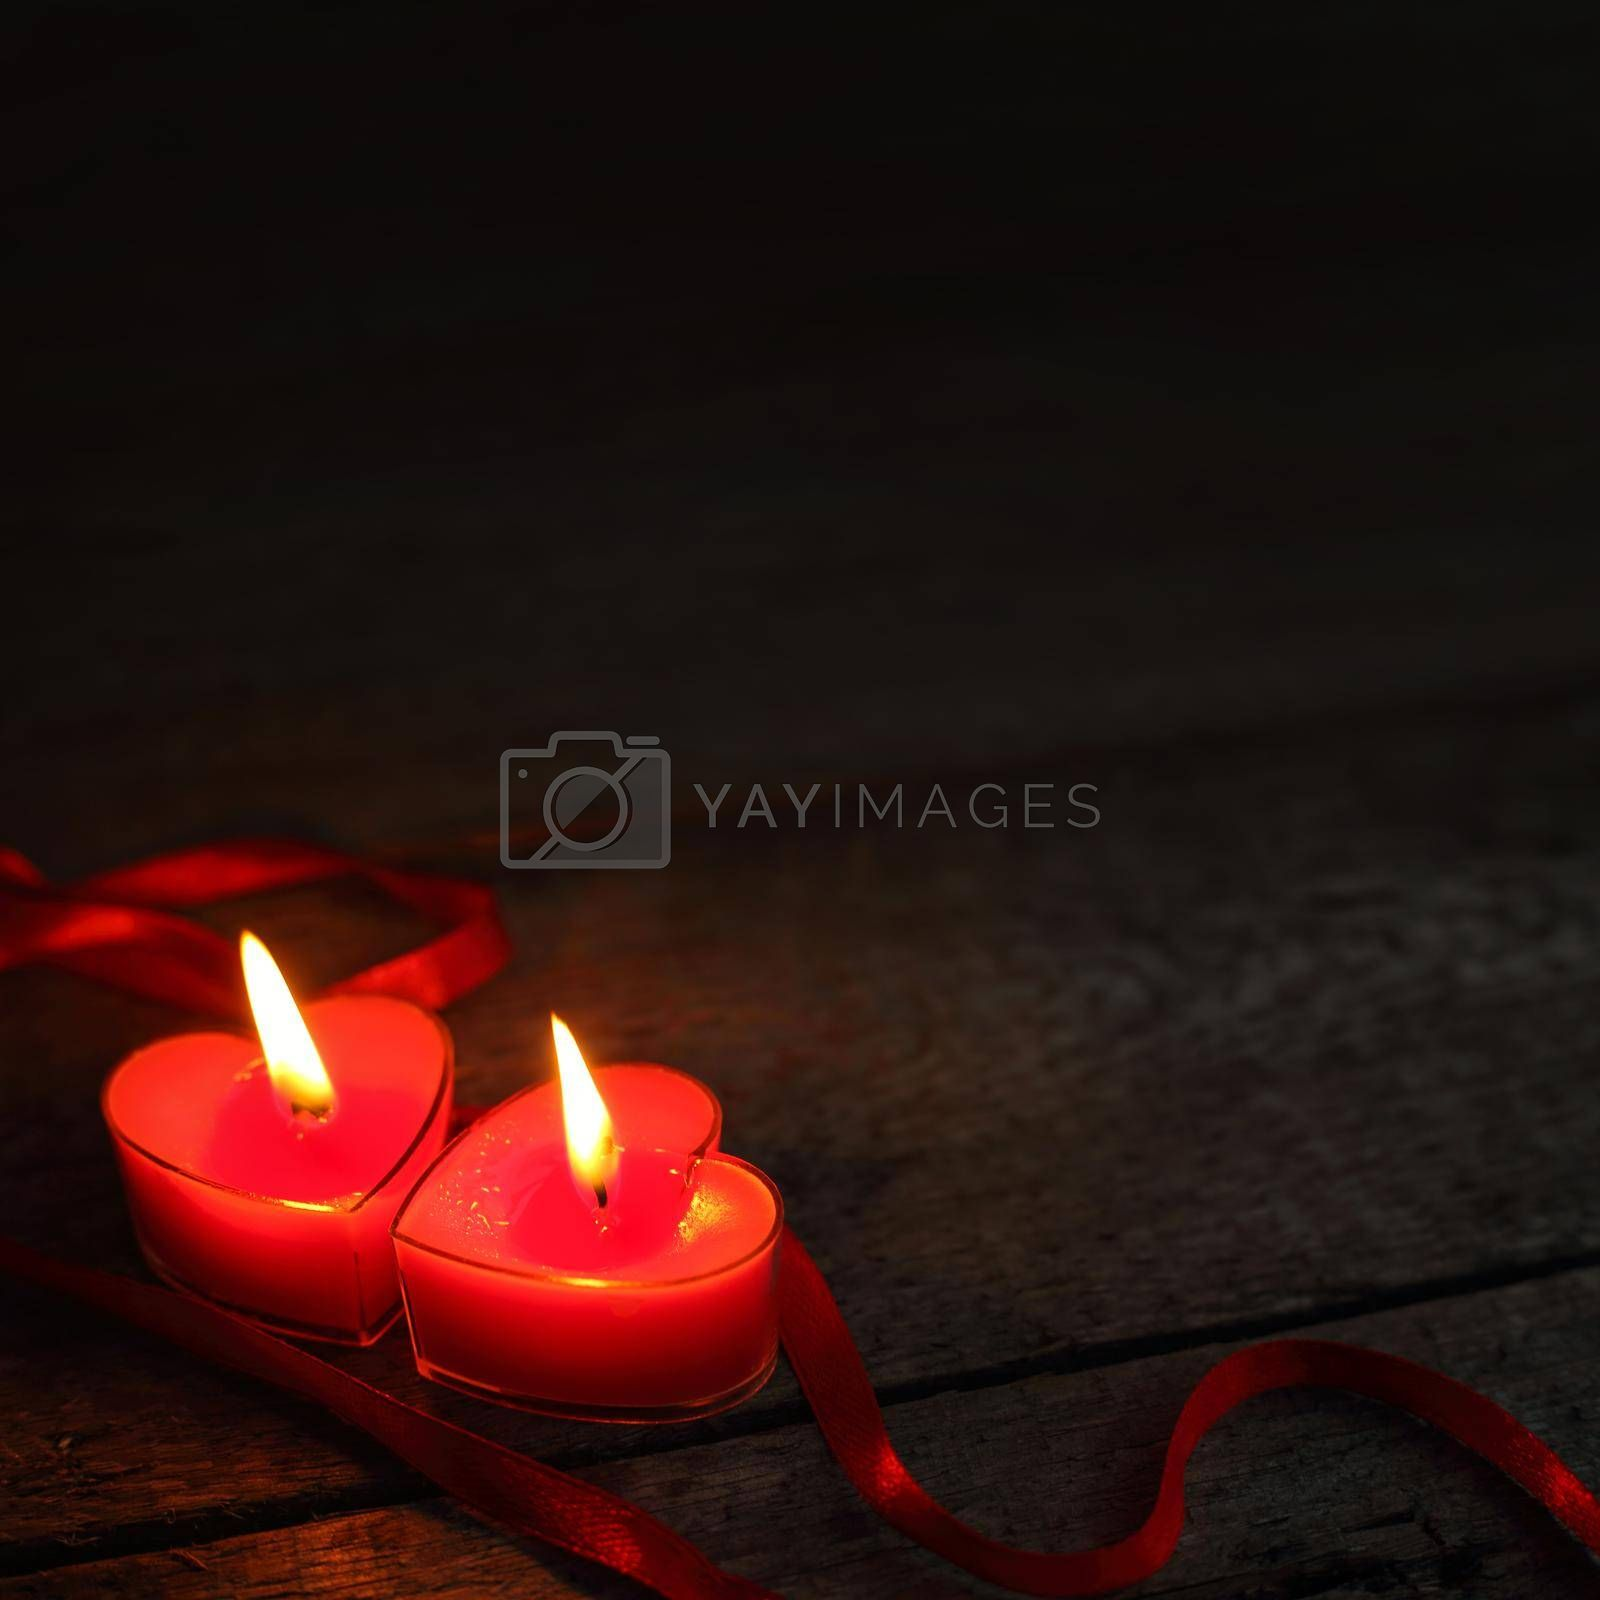 Heart shaped candles burning on wooden background, Valentines day concept